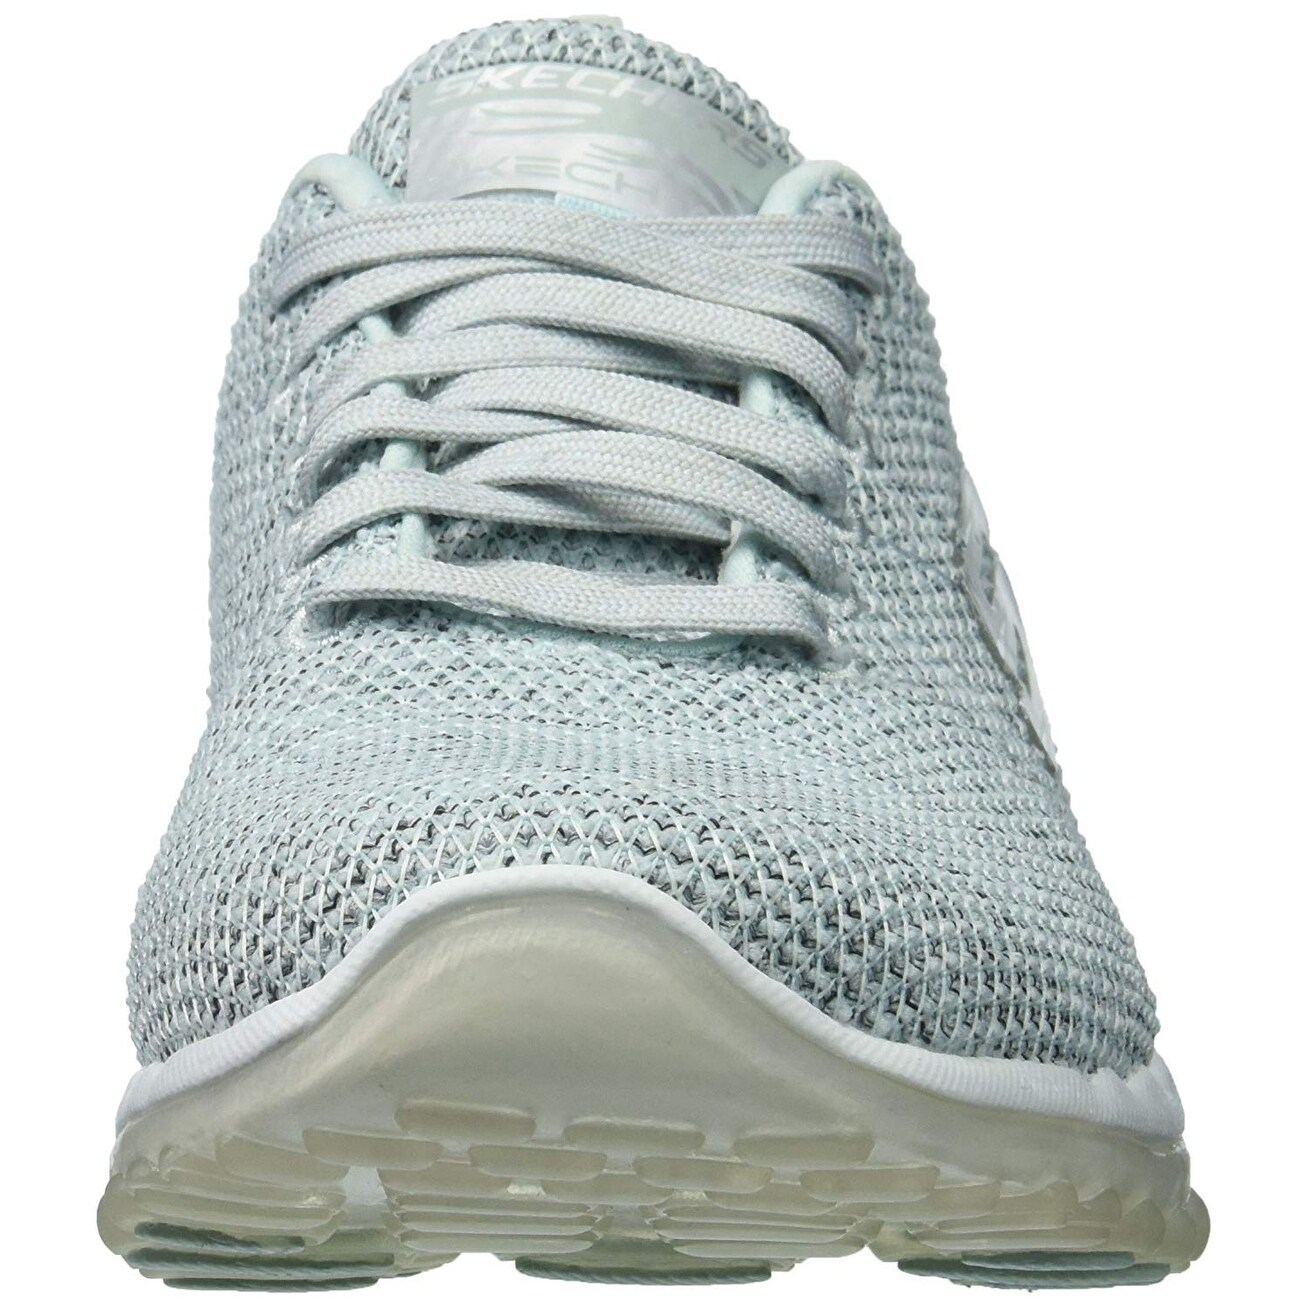 a95bb930406b Shop Skechers Womens Sport Skech Air 2.0 Next Chapter Low Top Pull On  Fashion Snea... - Free Shipping On Orders Over  45 - Overstock - 20722185